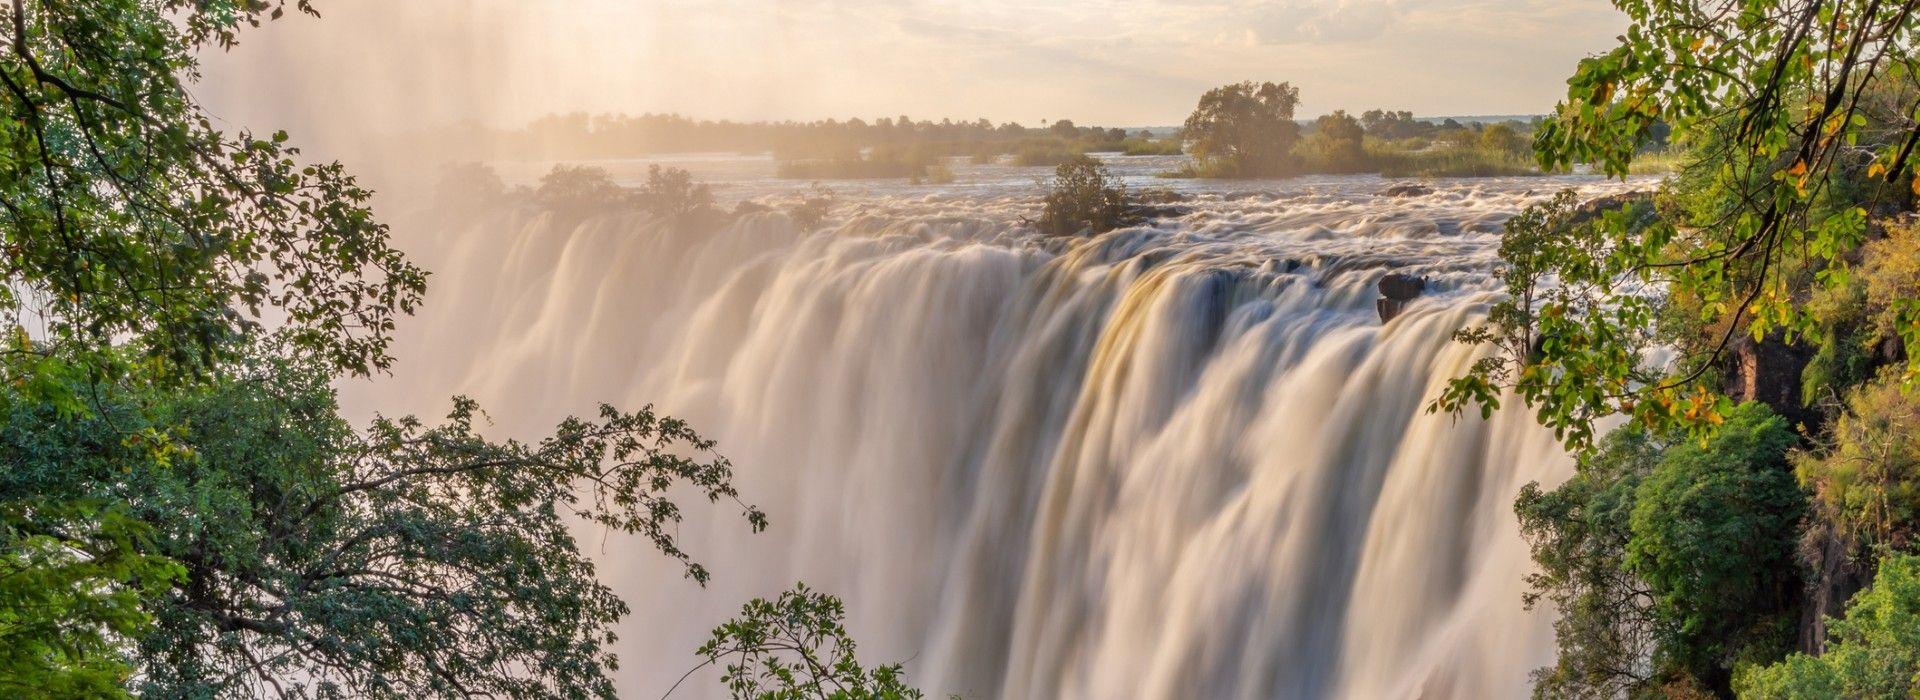 Air tours, road trips and transfers in East Africa